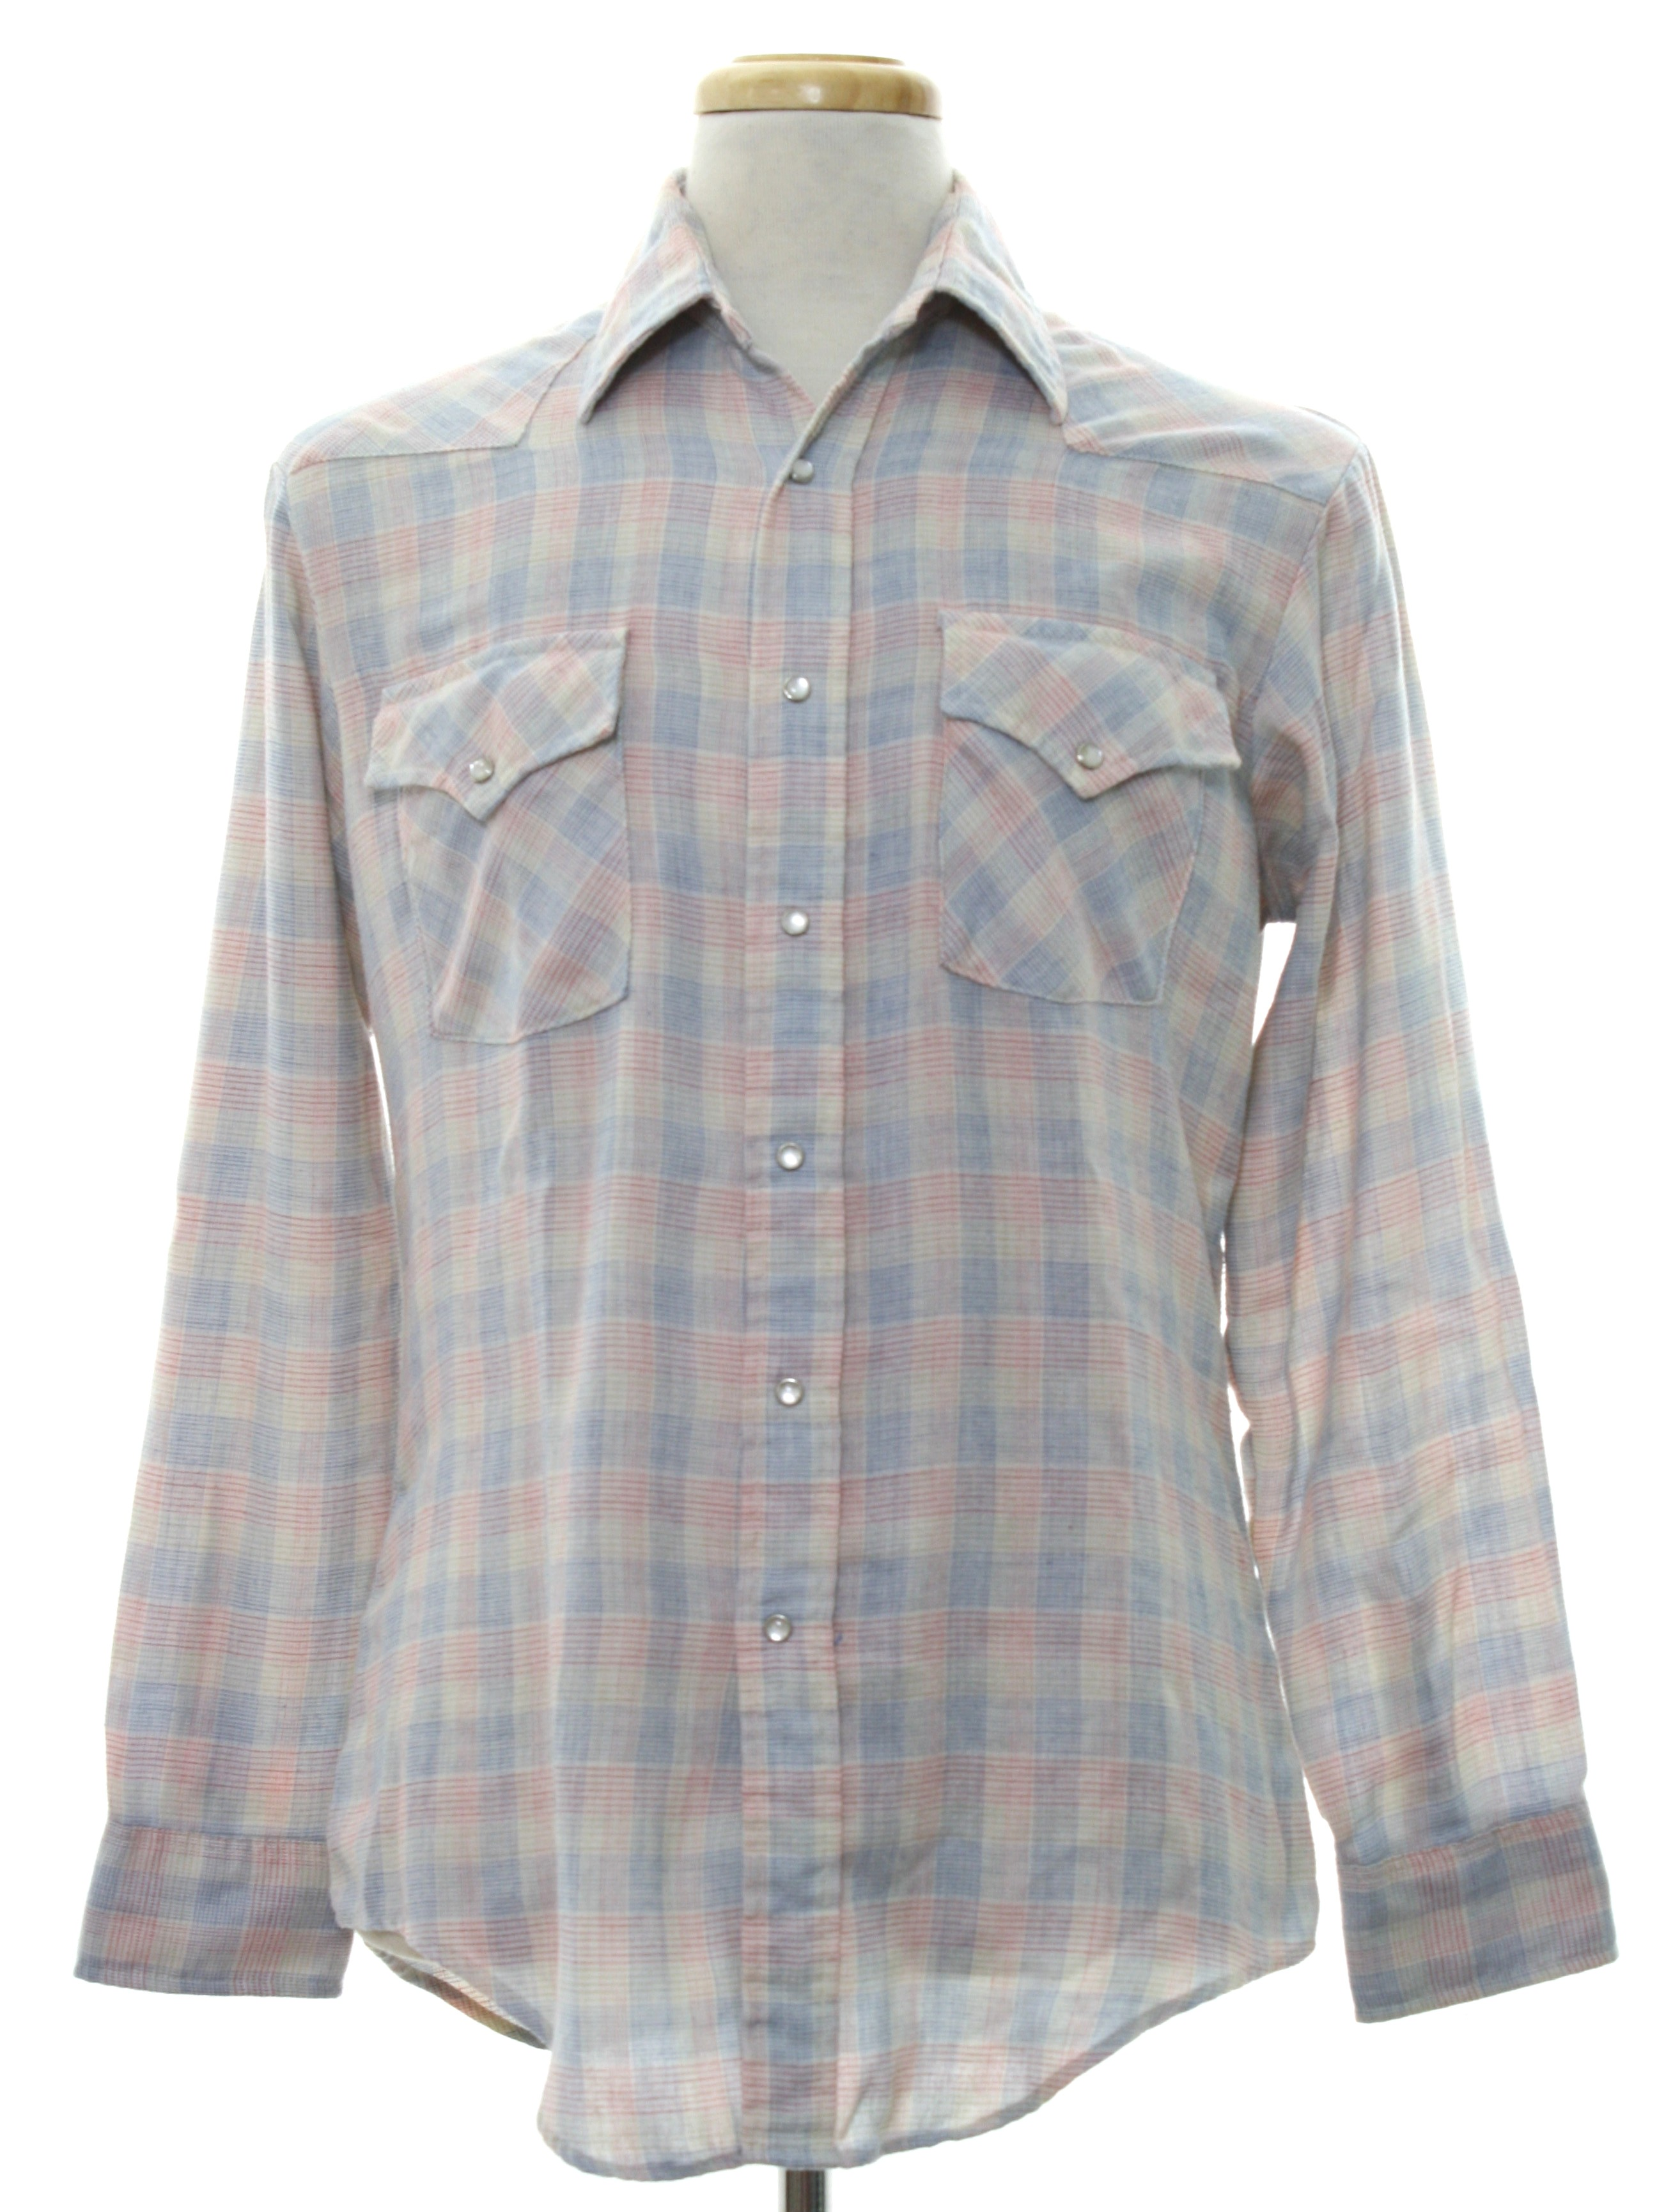 Retro 70s western shirt jeans joint 70s jeans joint for Cotton polyester flannel shirts